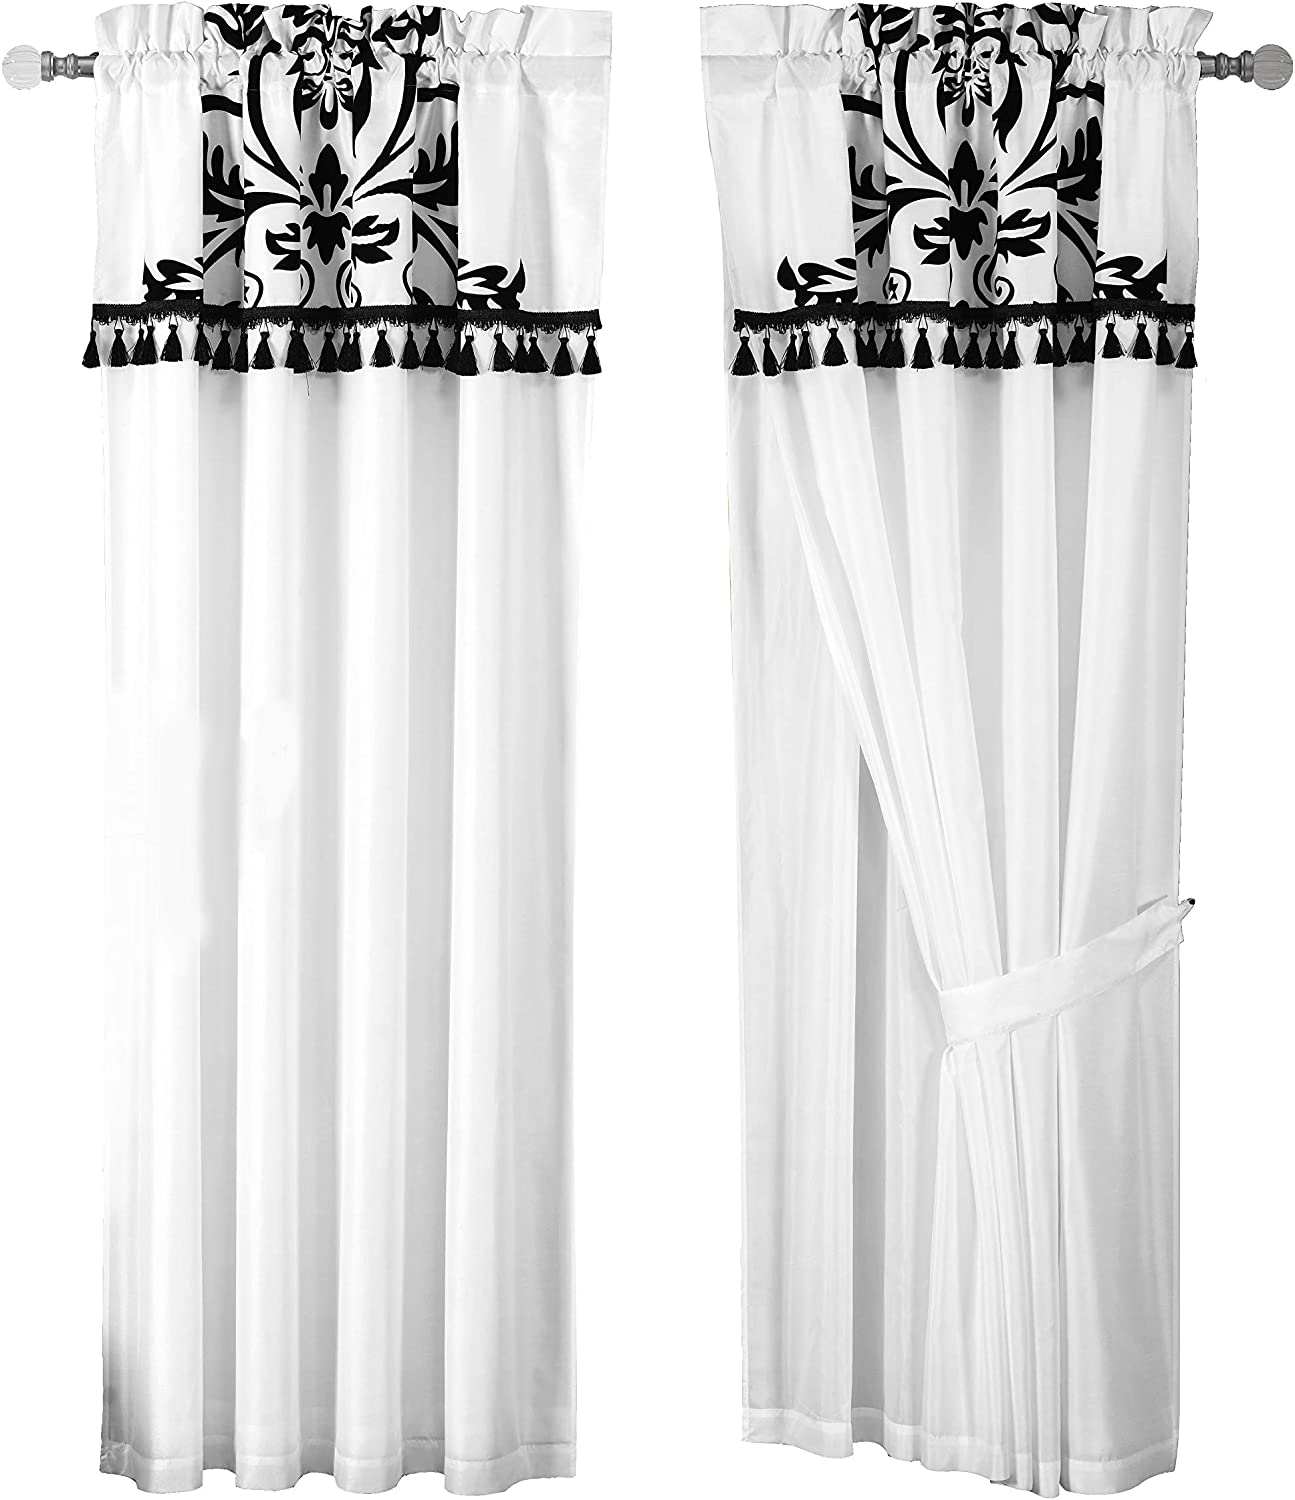 Chezmoi Collection 2 Panel Black And White Floral Window Curtain Drape Set With Valance Treatment Drapery Home Kitchen